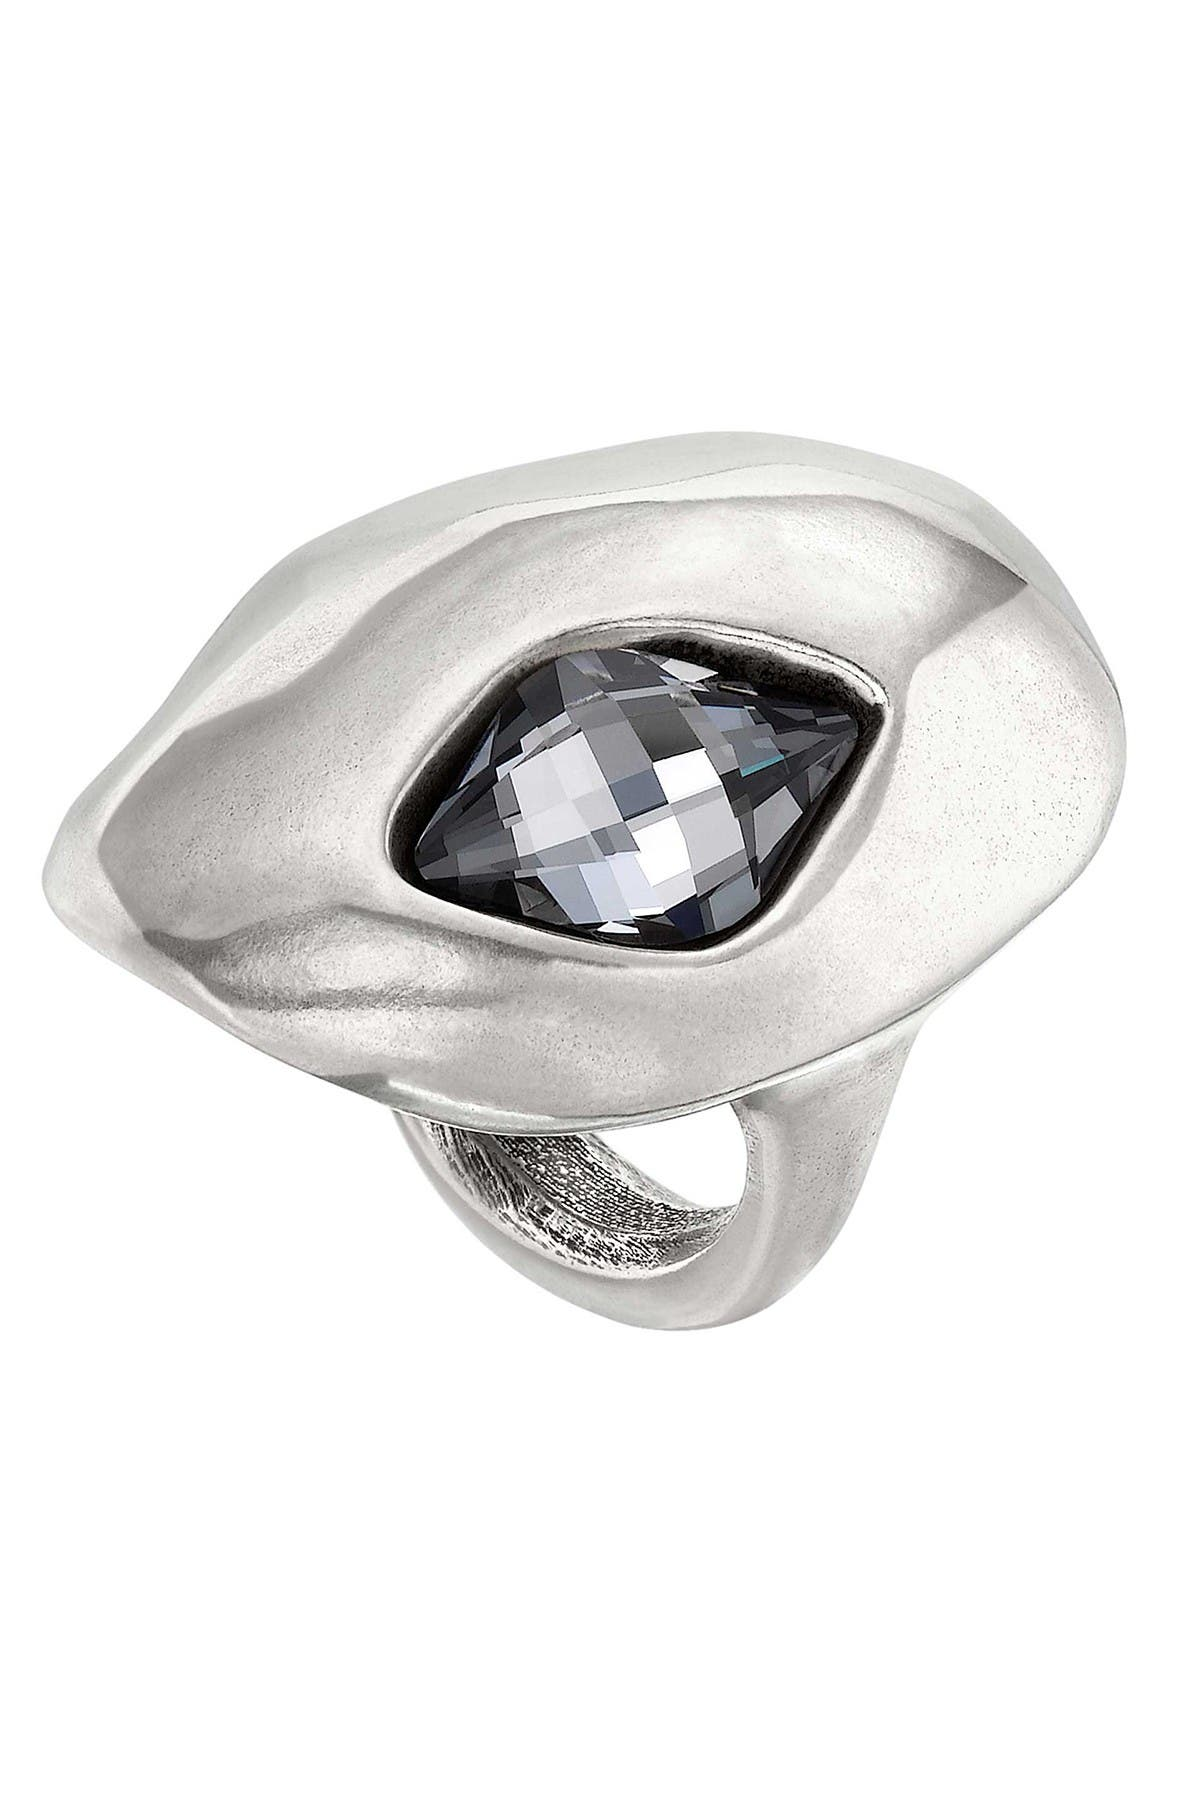 Image of Uno De 50 On the Moon Gray Swarovski Crystal Accented Shield Ring